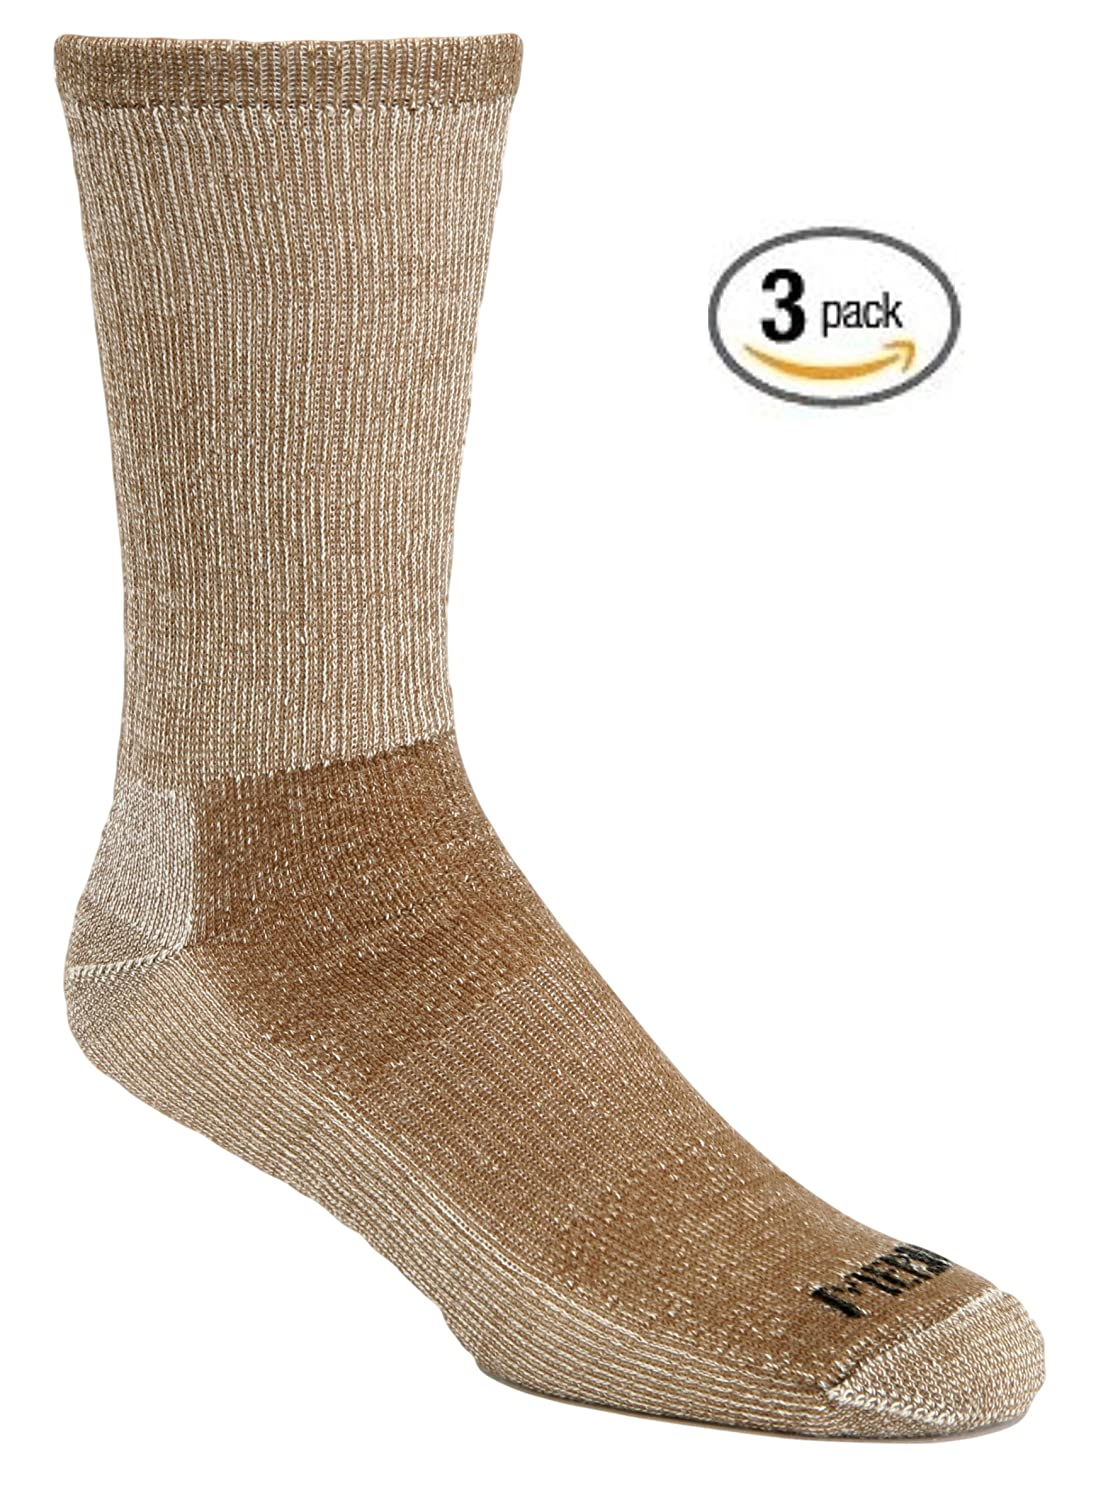 J.B. Field's Super-Wool Hiker GX Merino Wool Hiking Socks (3 Pairs) SoxShop